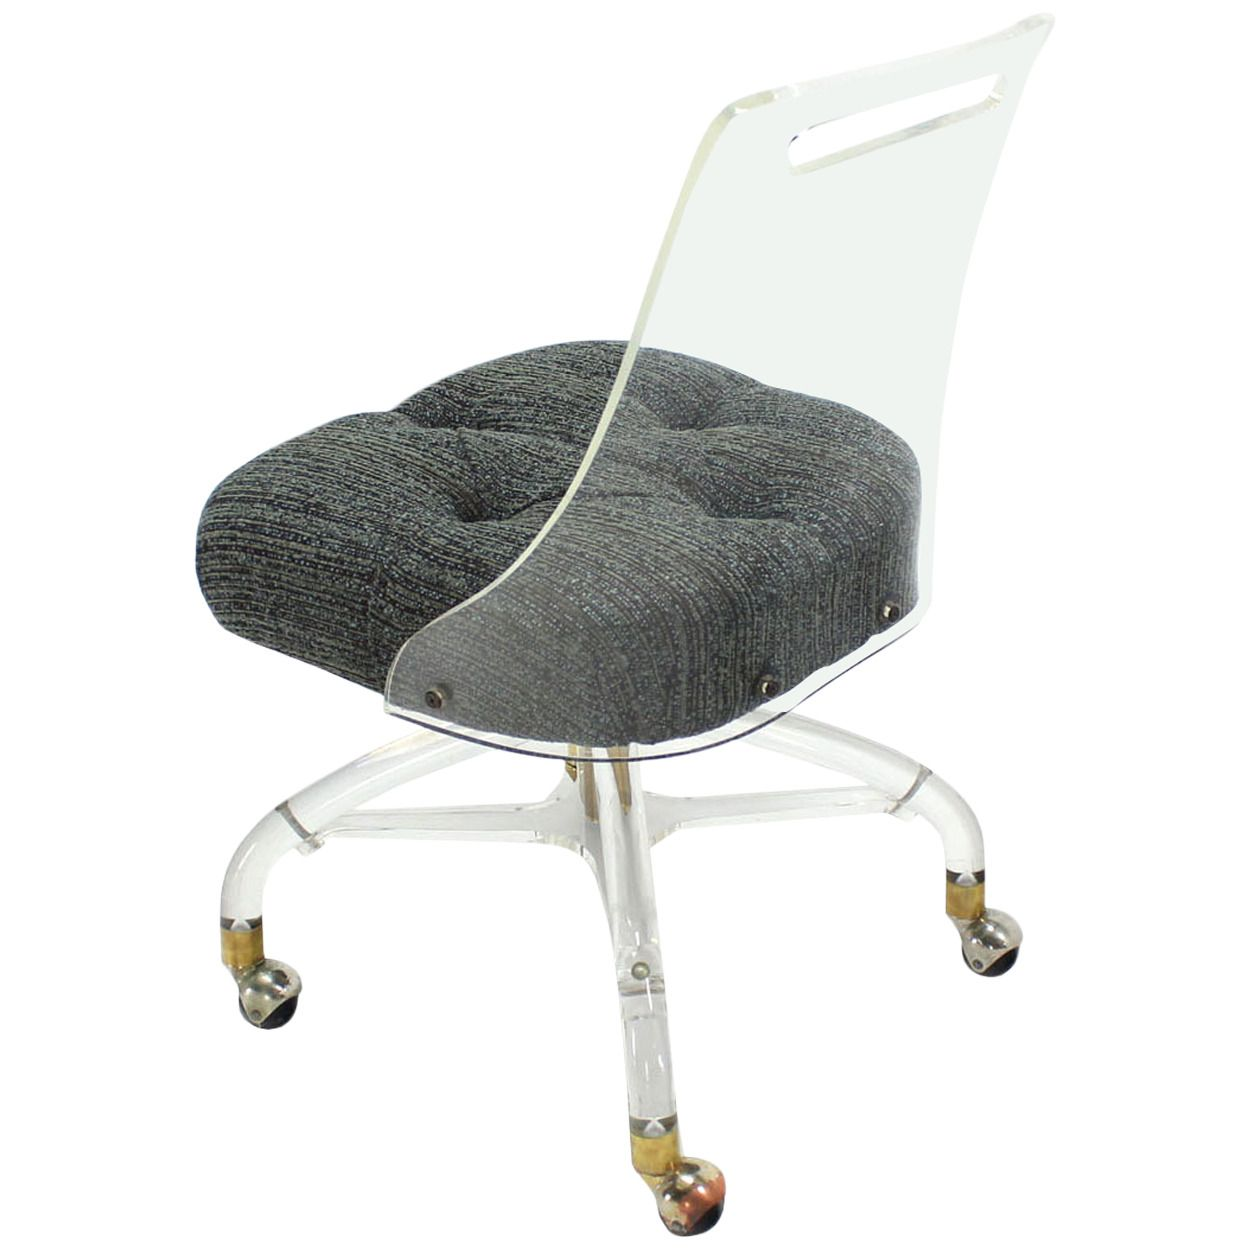 Superieur Mid Century Modern Lucite Desk Chair | From A Unique Collection Of Antique  And Modern Armchairs At Https://www.1stdibs.com/furniture/seating/armchairs/